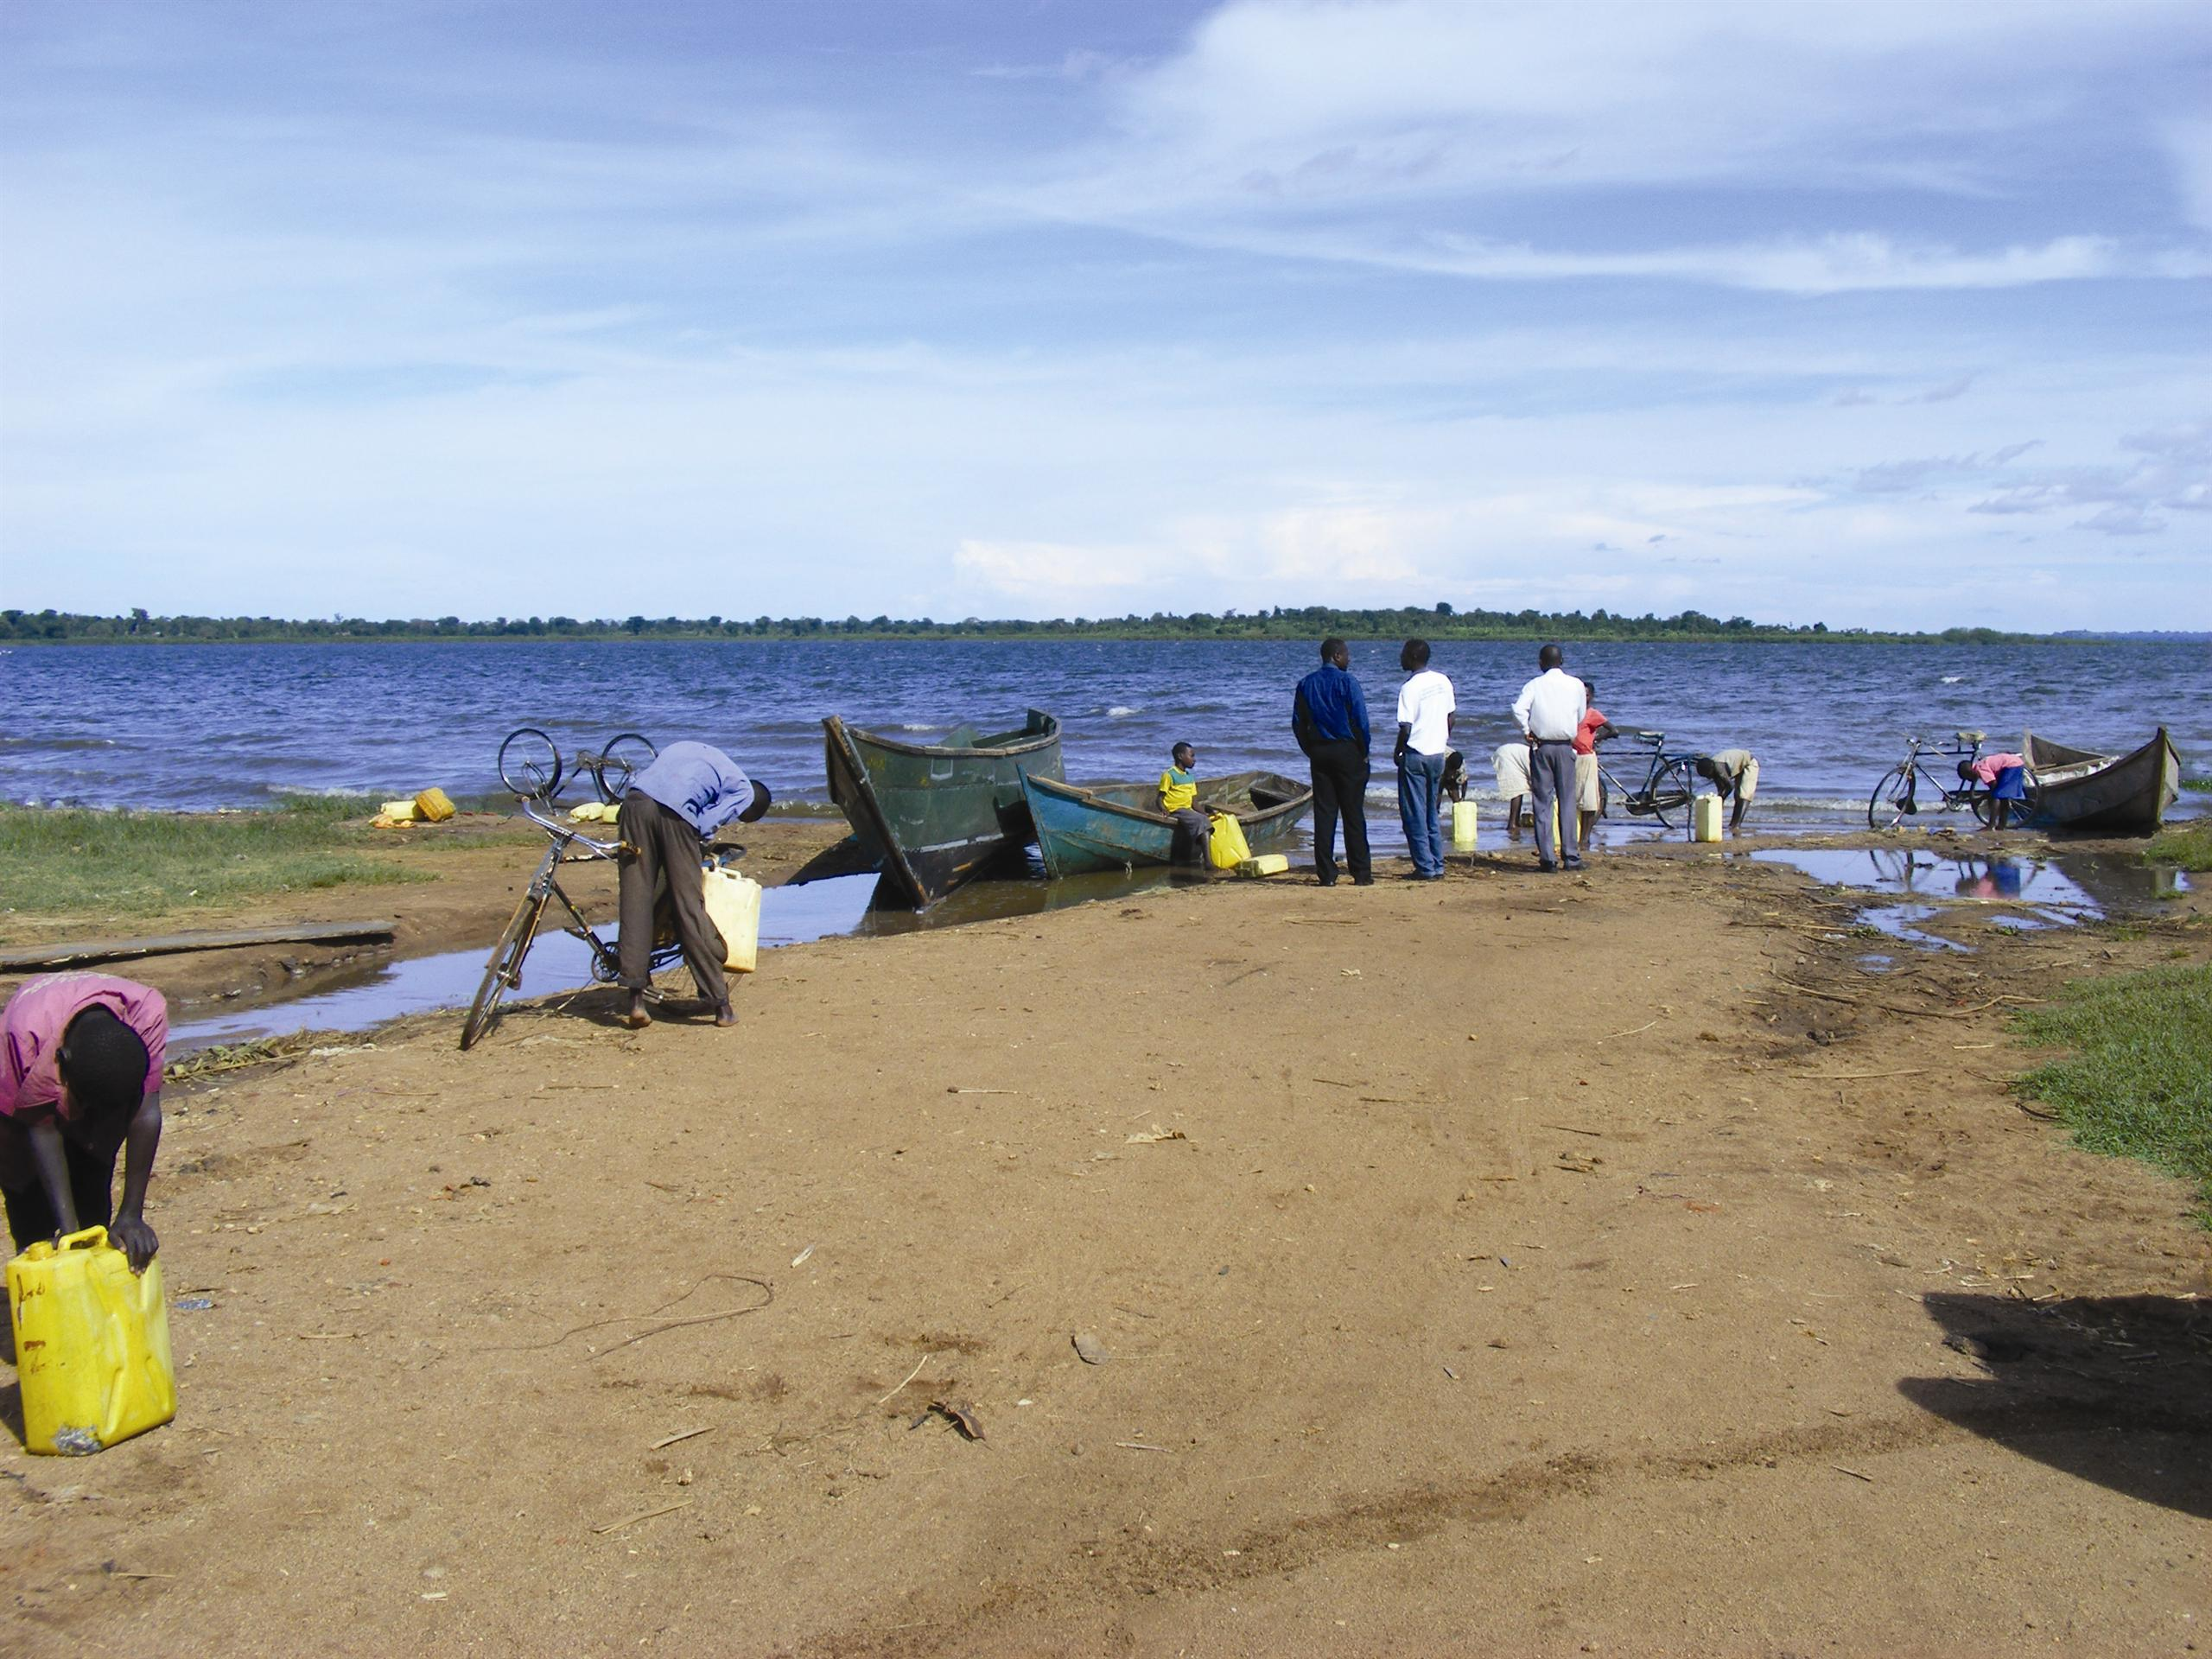 Local people by side of lake with wooden boat on shore